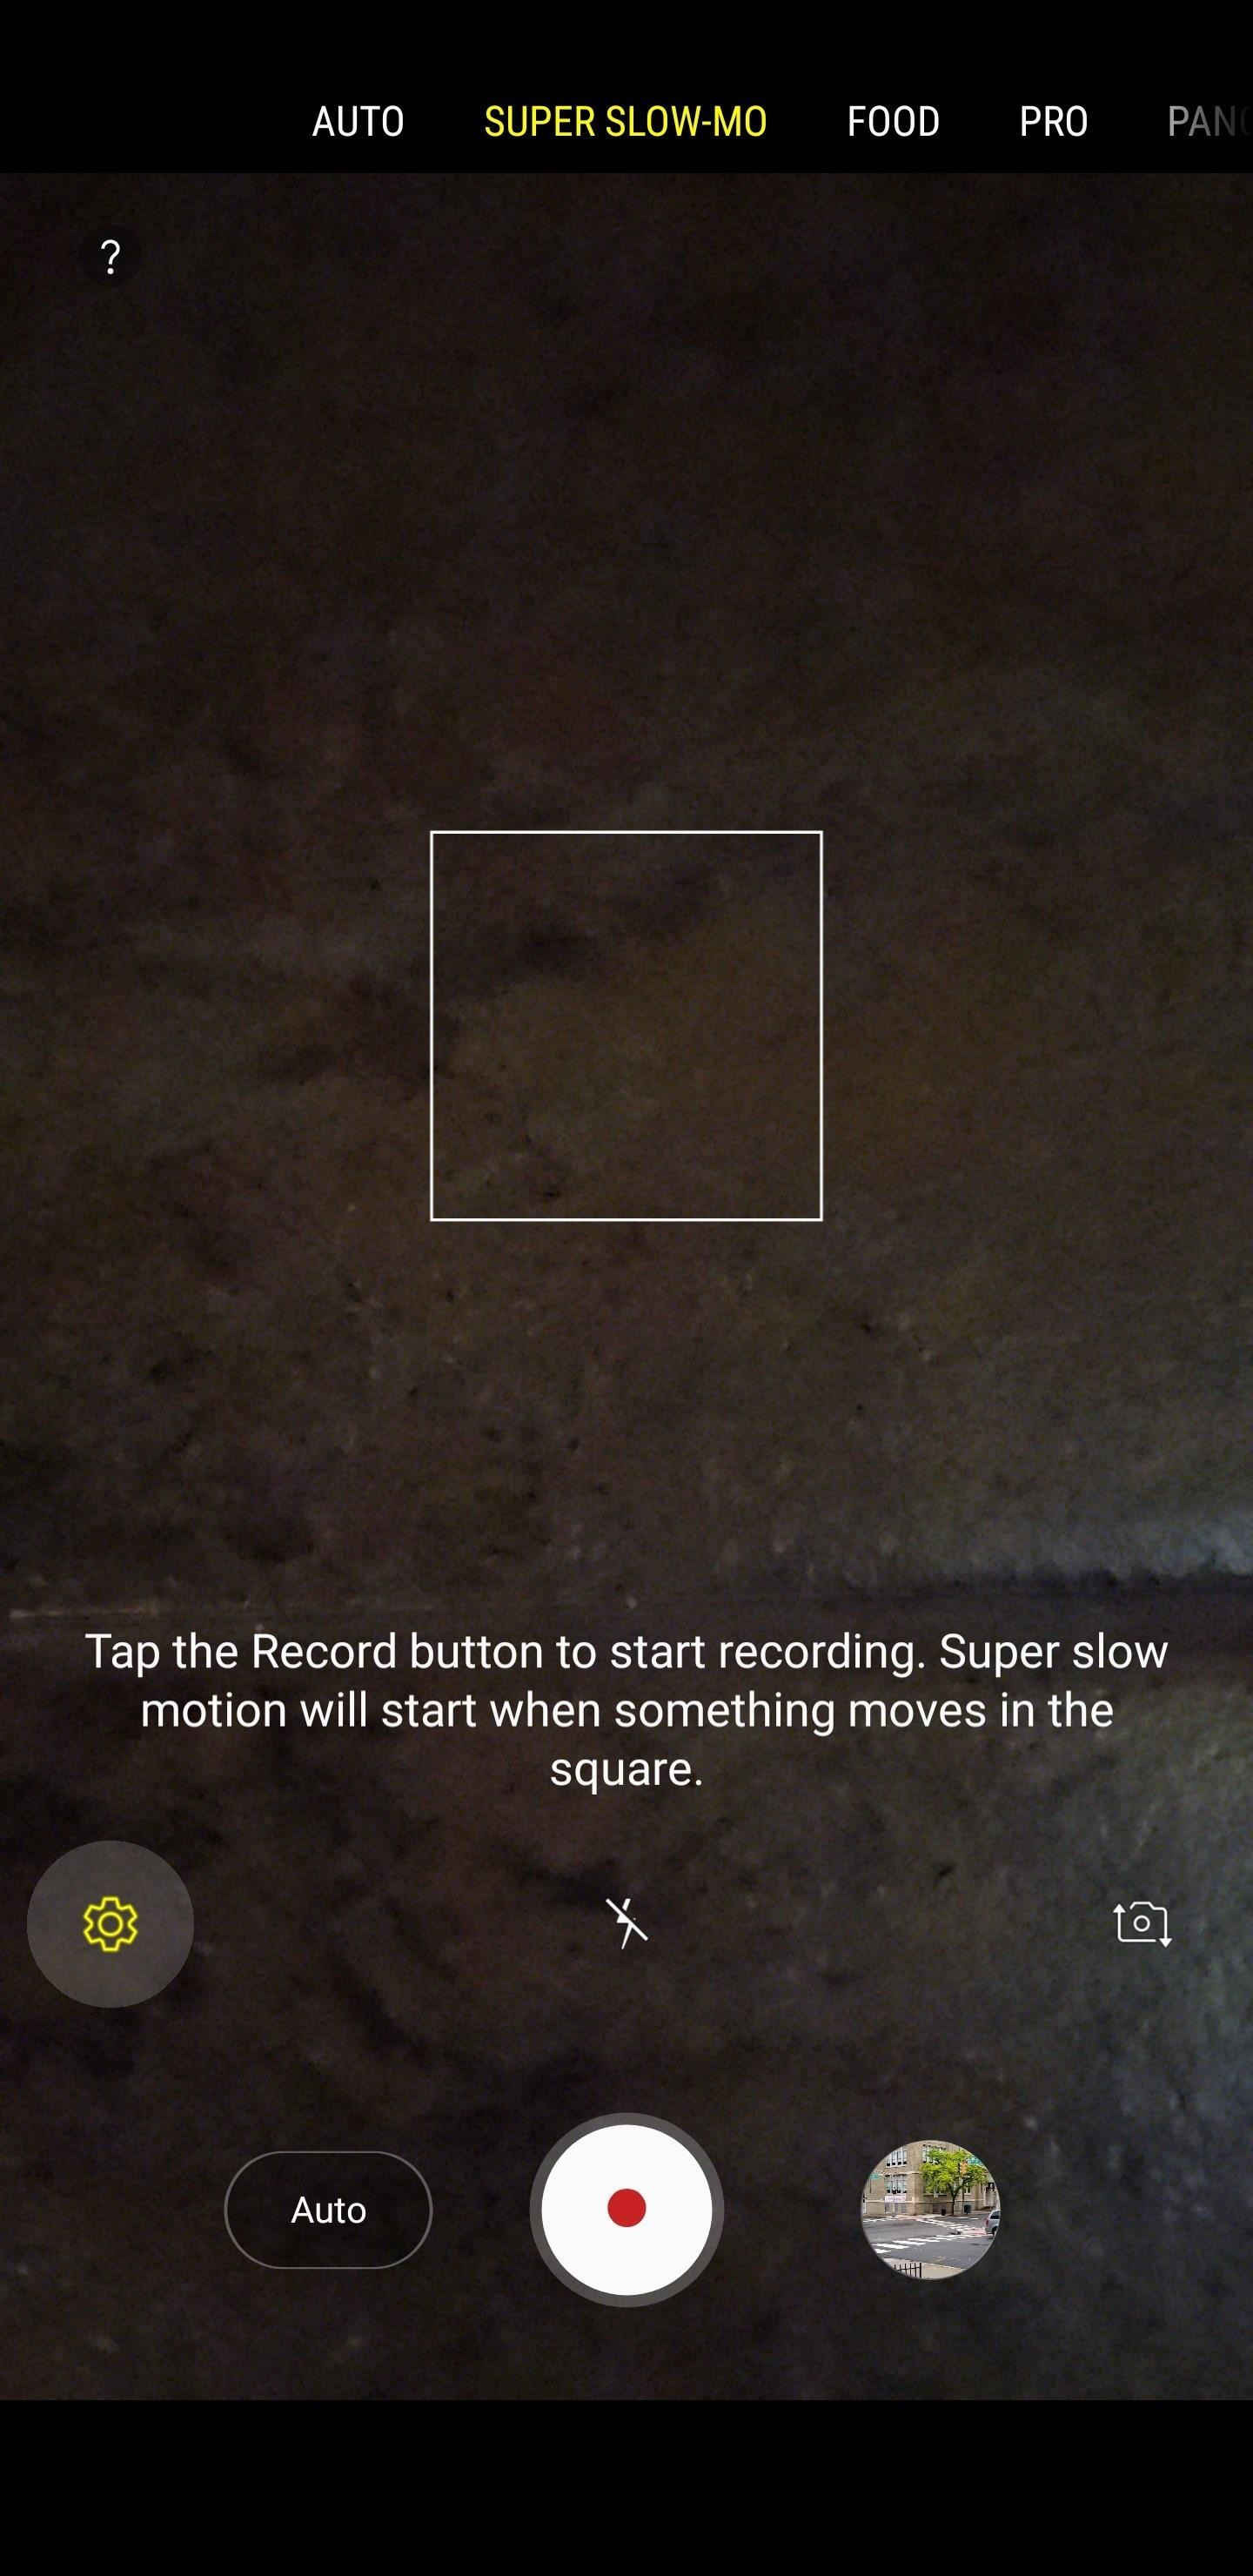 10 tips for using the super slow motion of Samsung like a pro